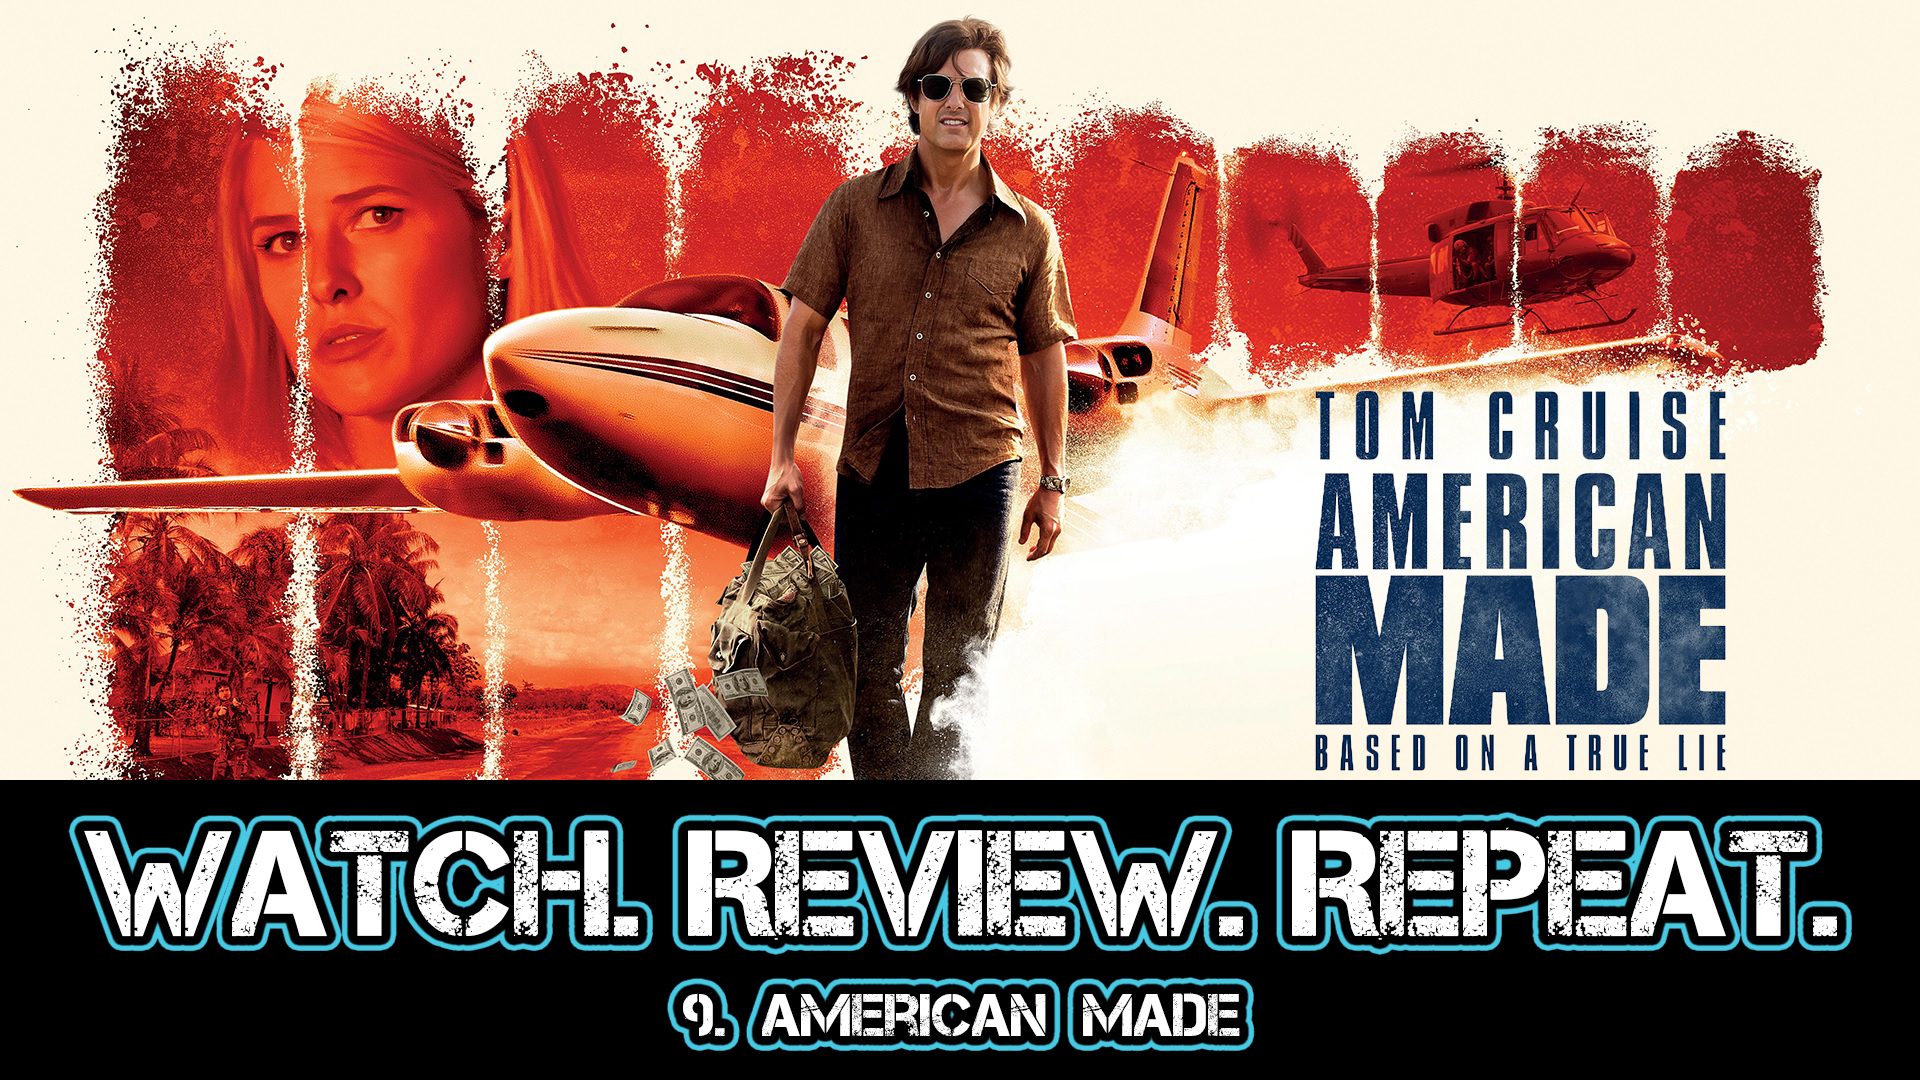 Copy of 9. American Made